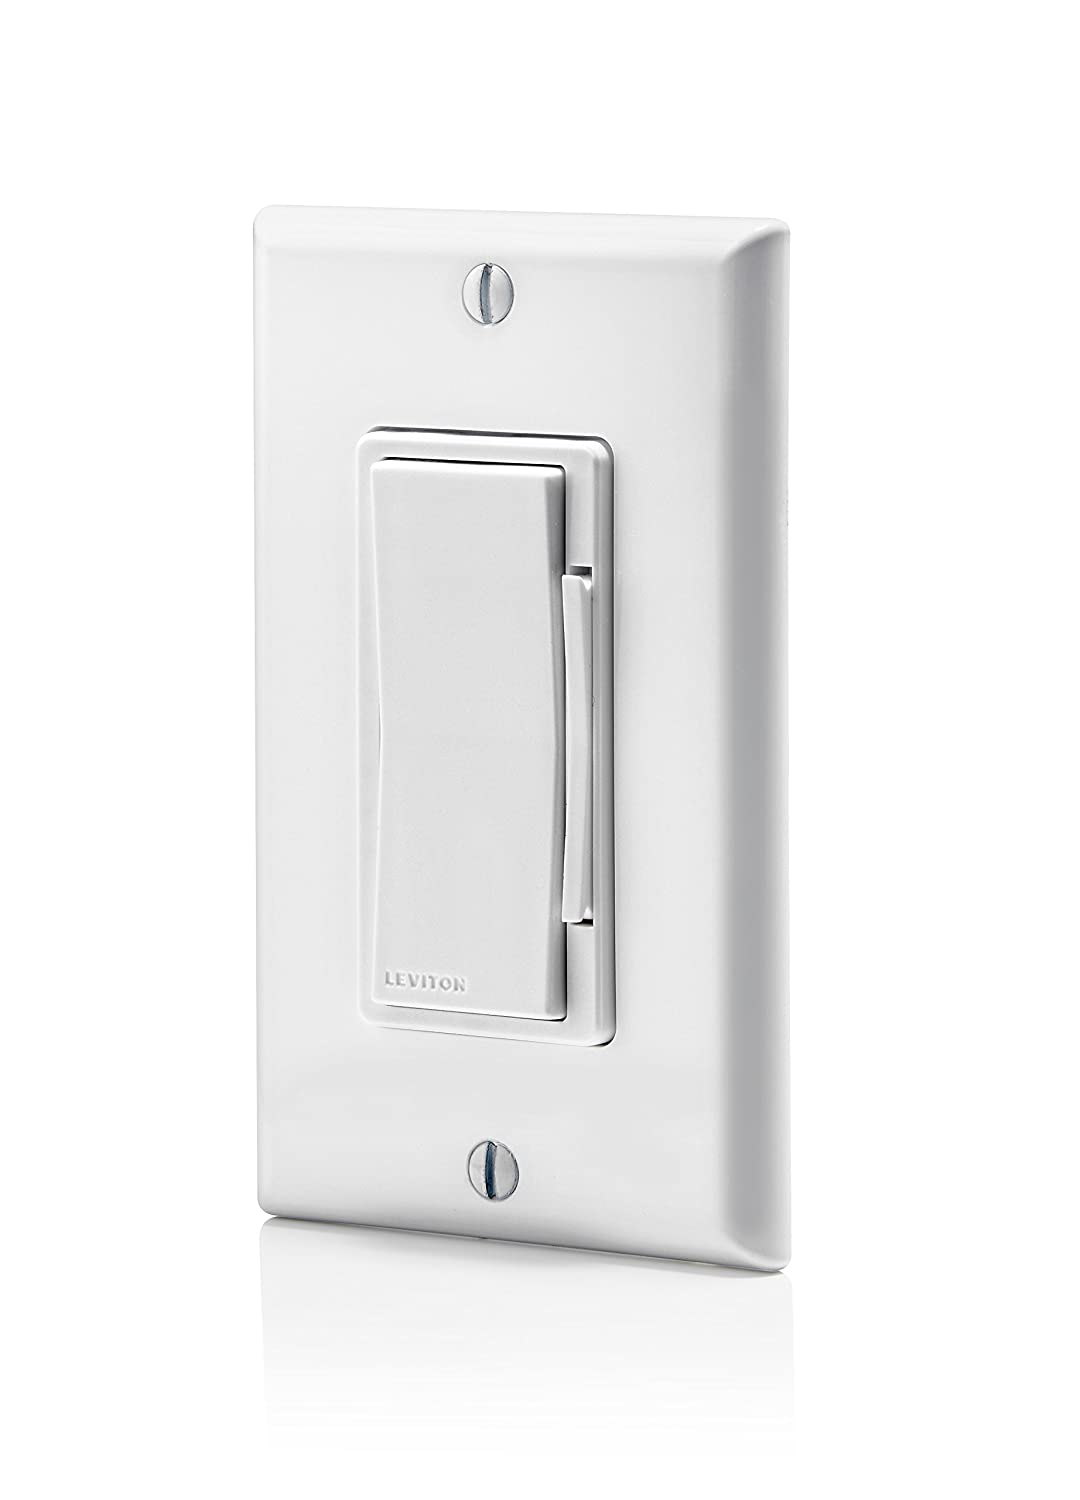 Leviton DD710-BLZ Decora Digital 0-10V Dimmer and Timer with Bluetooth Technology White//Ivory//Light Almond